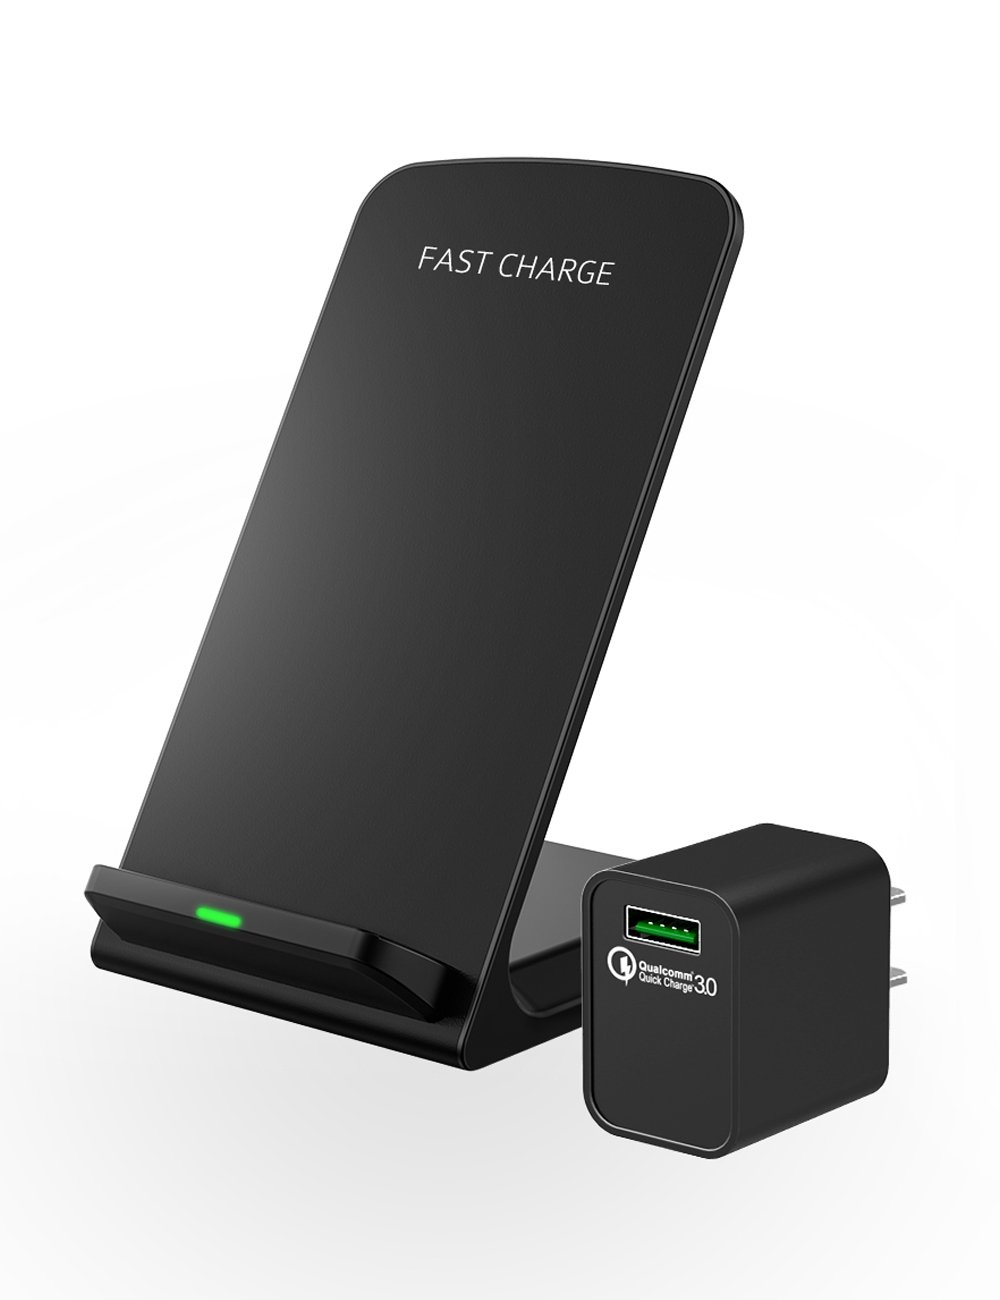 Seneo (Upgraded) Wireless Charger, Qi Certified Fast Wireless Charger Stand with QC 3.0 Adapter for Galaxy S9/S9+ Note 8/5 S8/S8+ S7/S7 Edge S6 Edge+, Standard Qi Charger for iPhoneX/8/8 Plus